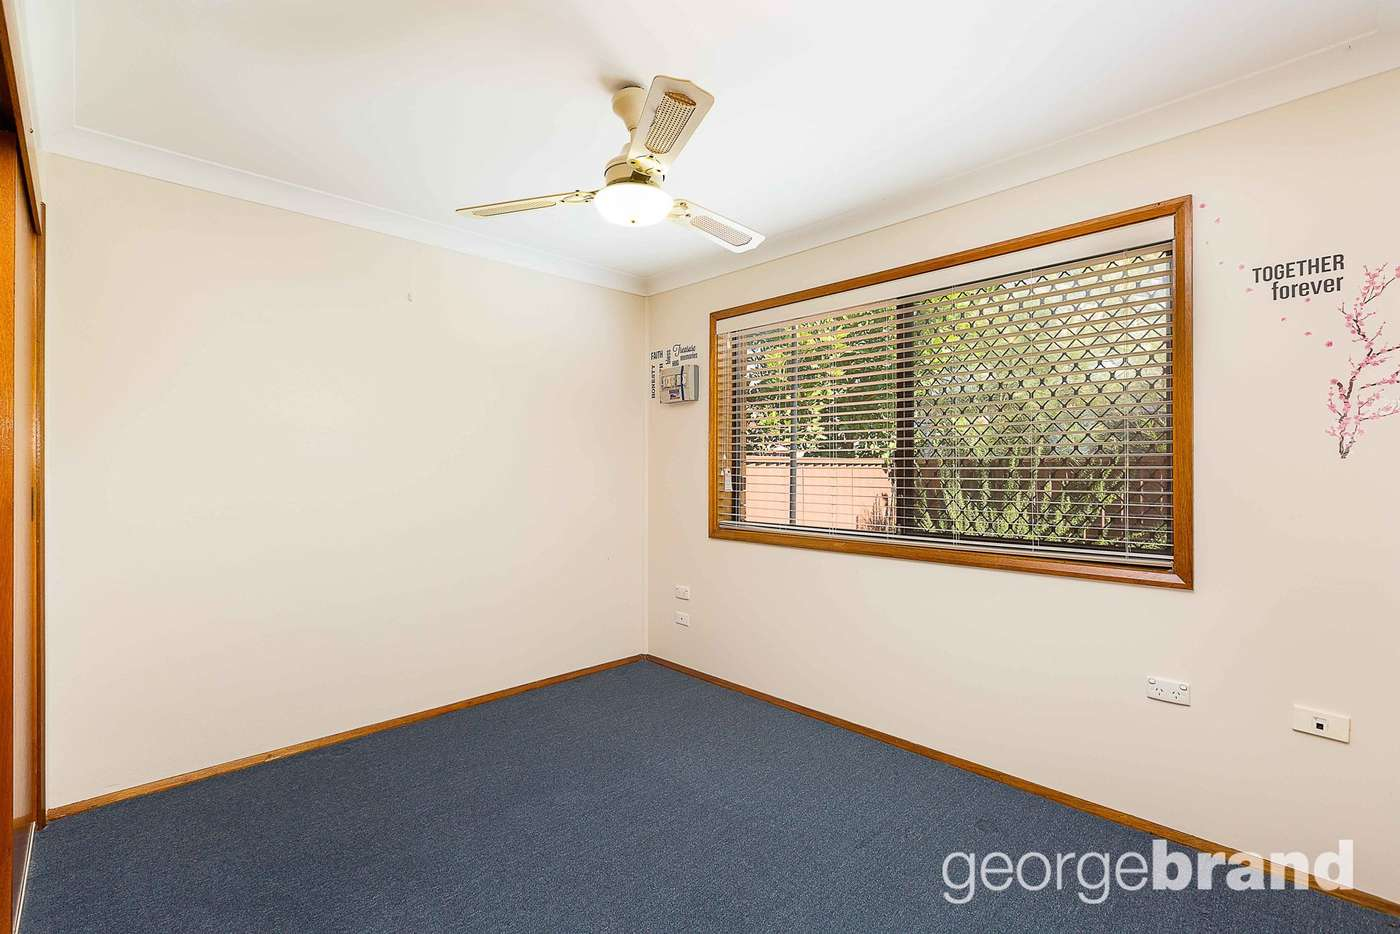 Sixth view of Homely villa listing, 5/16 Heador Street, Toukley NSW 2263